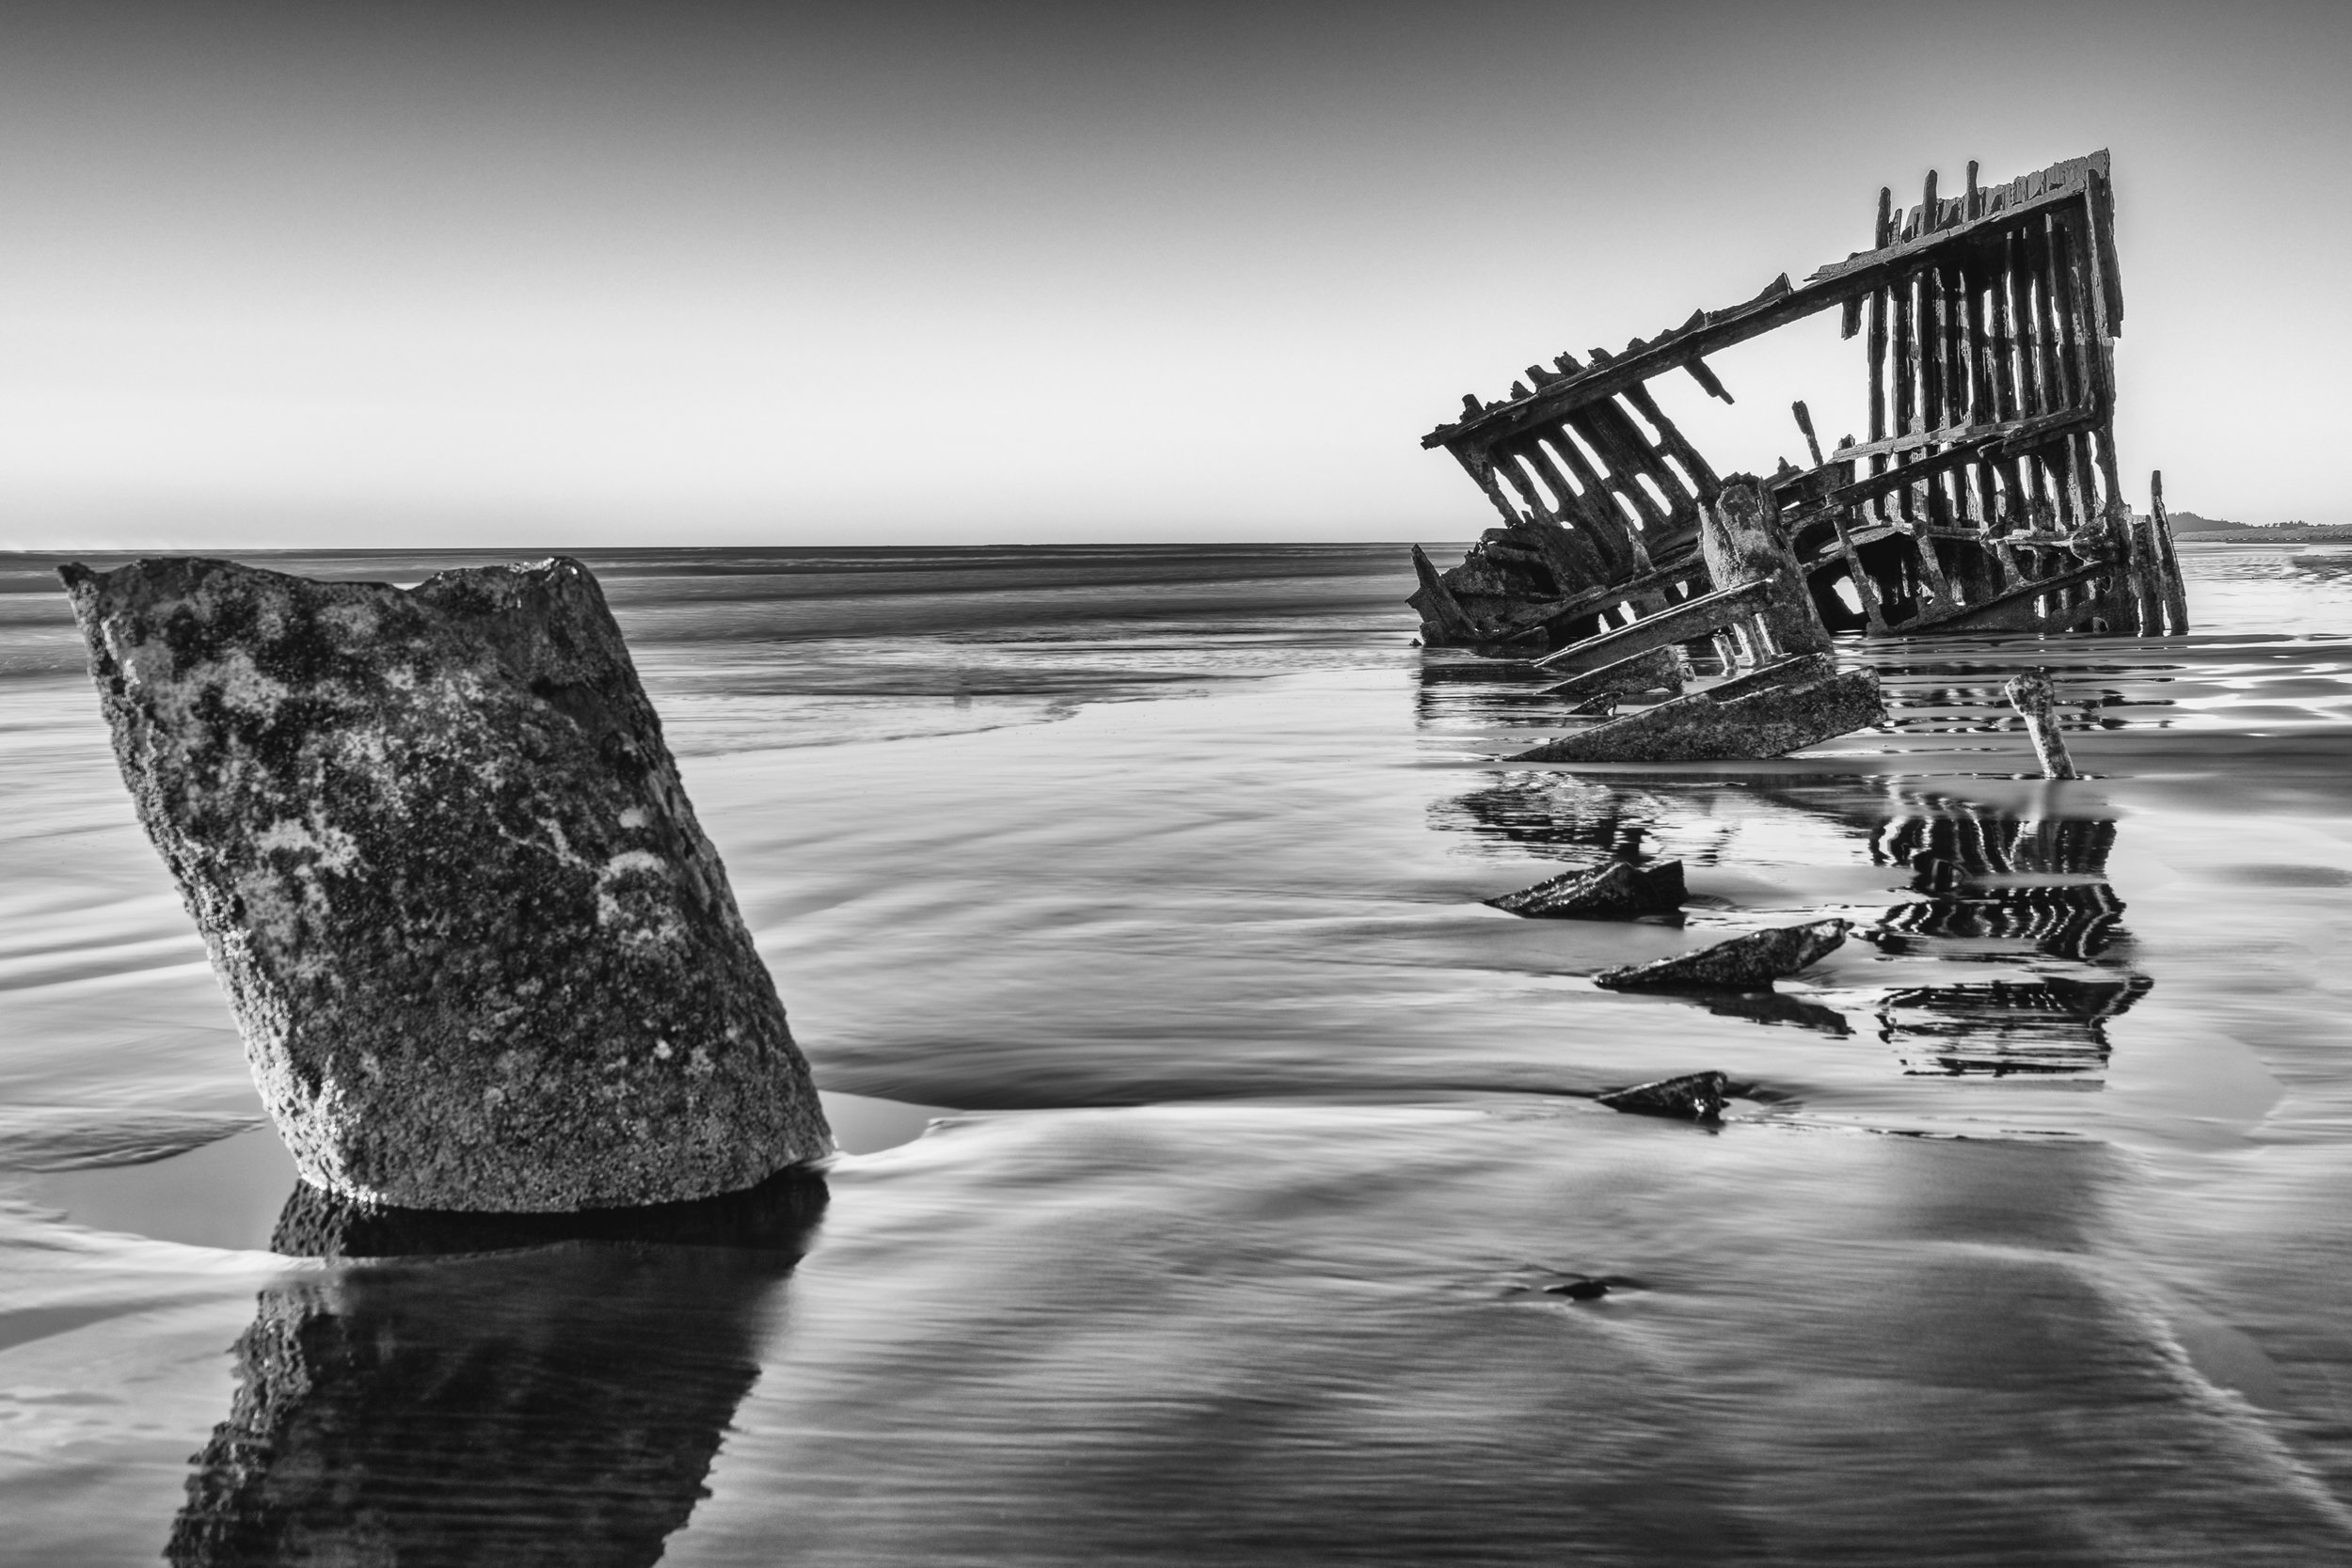 The Peter Iredale 3